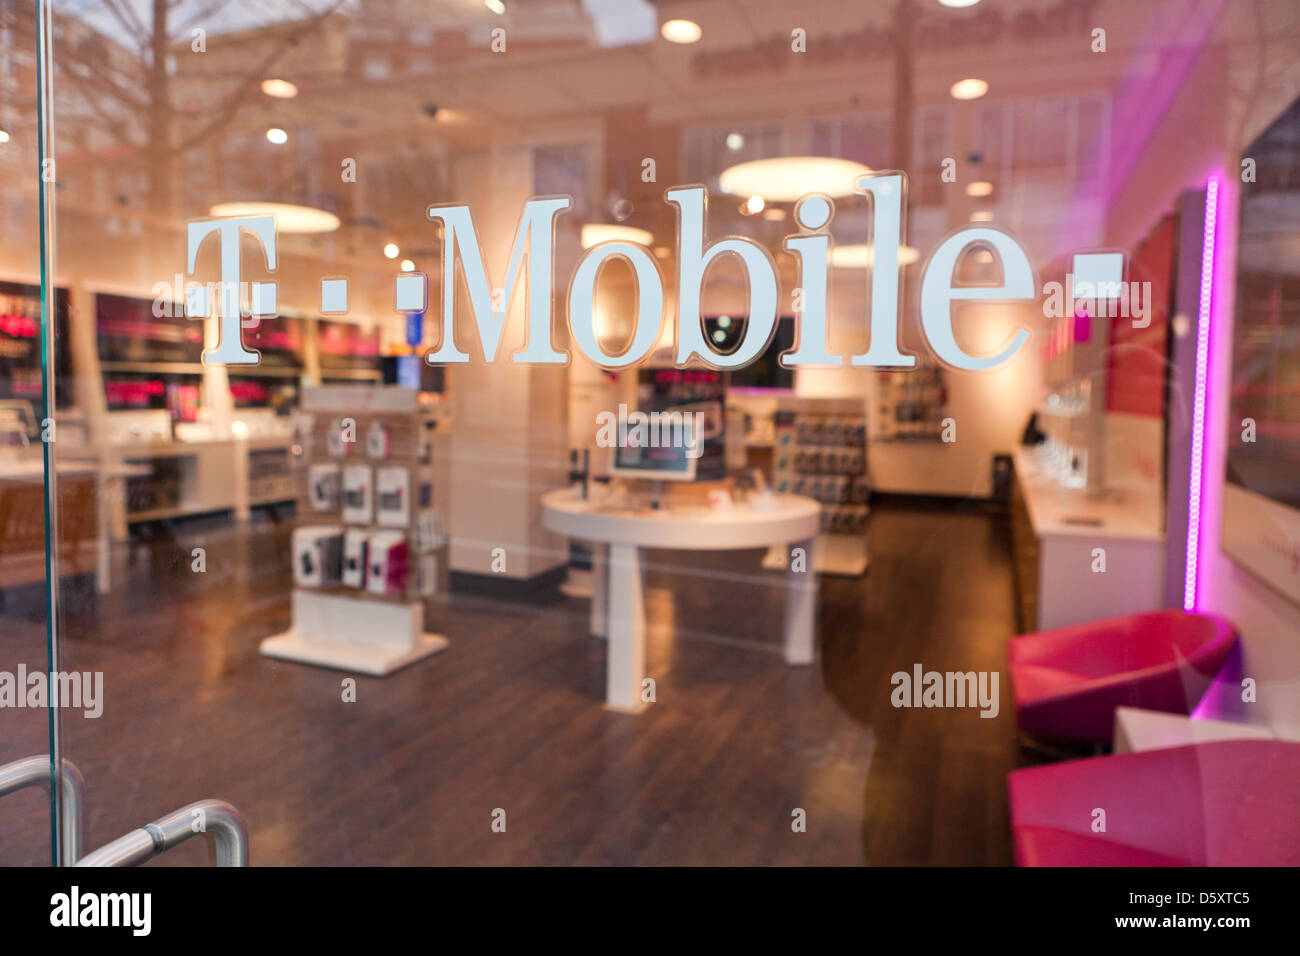 T Mobile Retail Store Stock Photo, Royalty Free Image: 55294293 ...